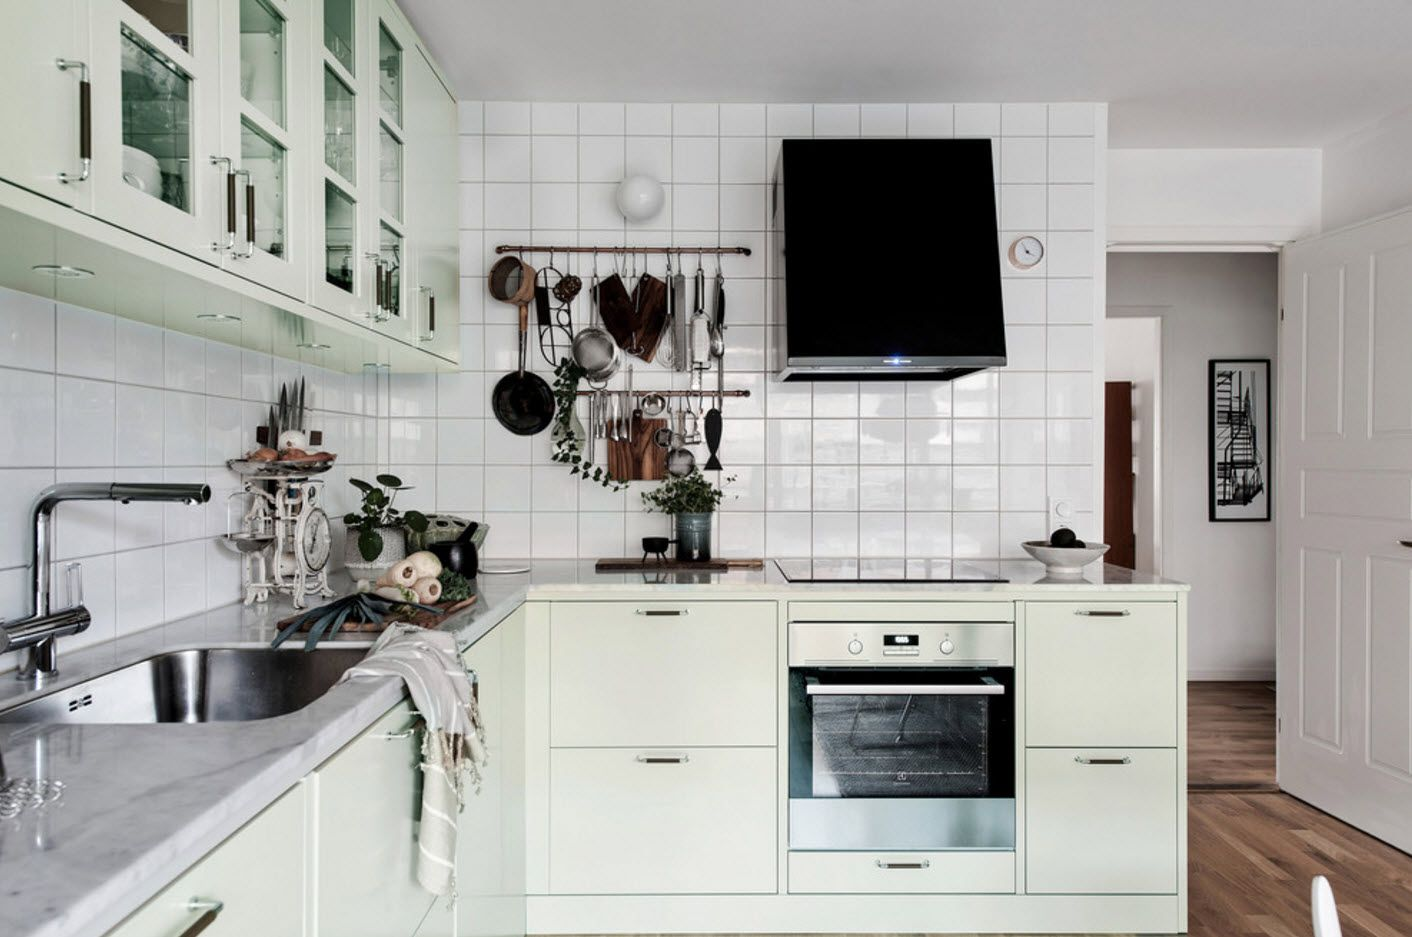 100+ Photo Design Ideas of Modern, Comfortable IKEA Kitchens. Conventional glossy tiles for spashback